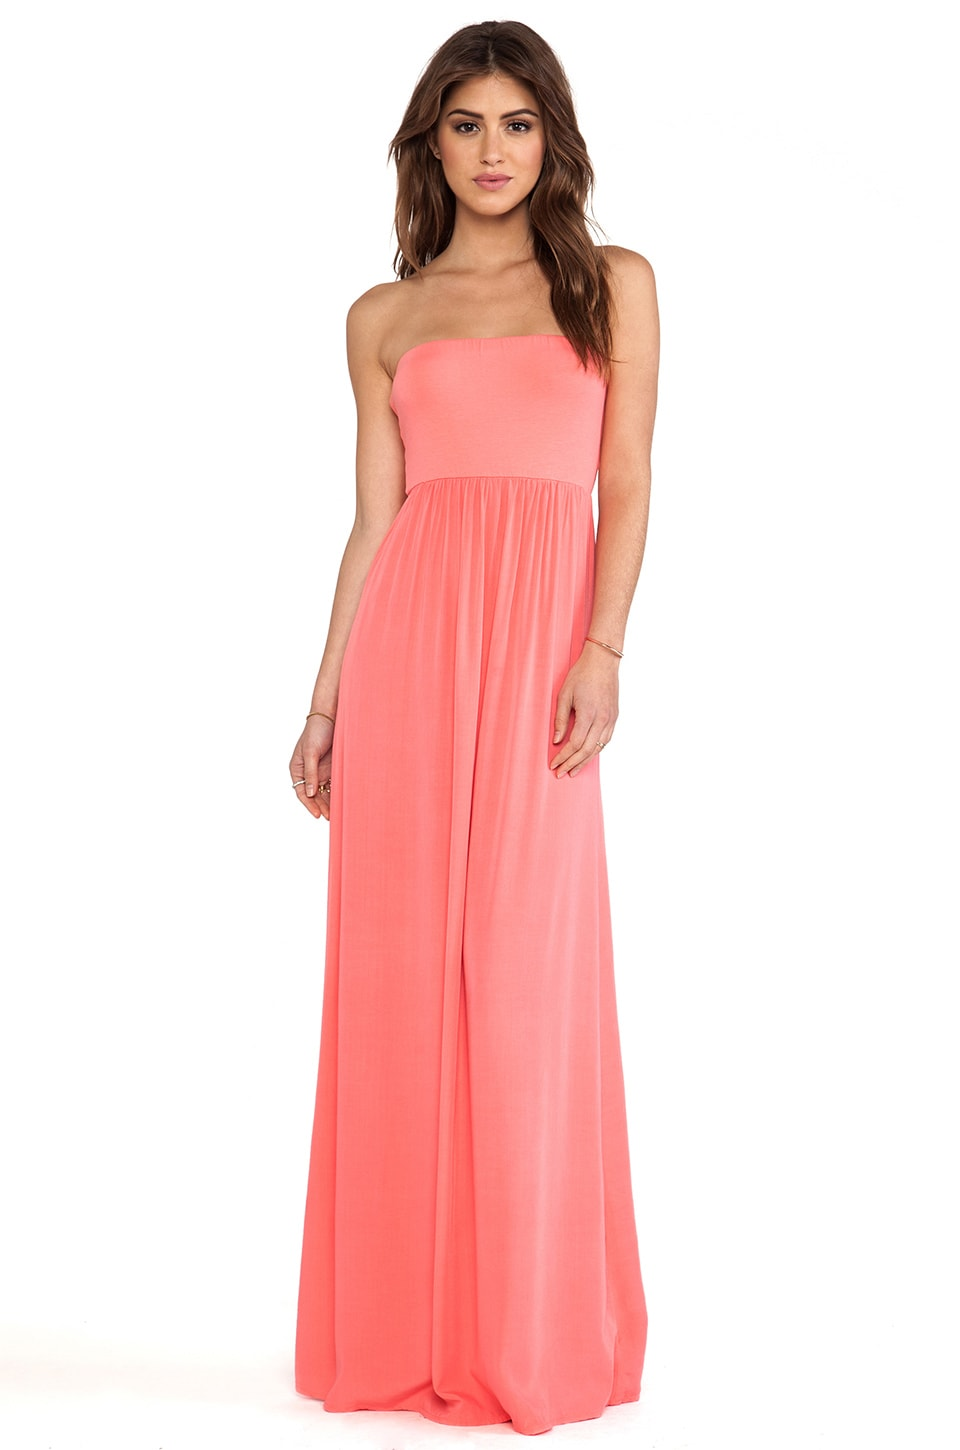 Splendid Strapless Maxi Dress in Coral Pink